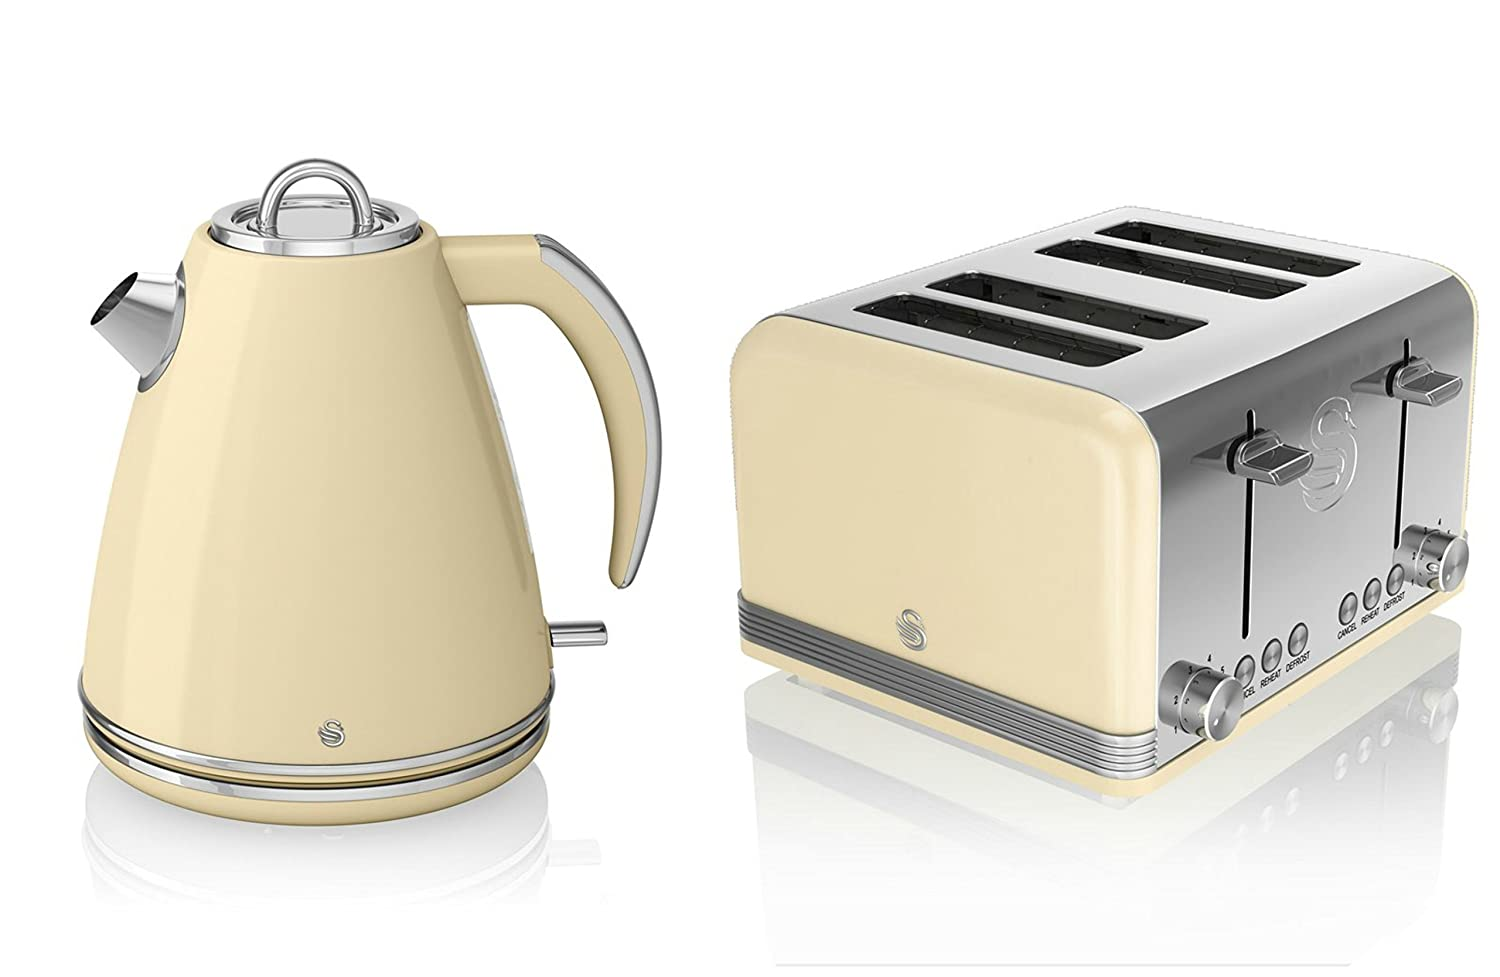 Swan Kitchen Appliance Retro Set - Cream 1.5 Litre Jug Kettle & Cream Modern 4 Slice Toaster Set